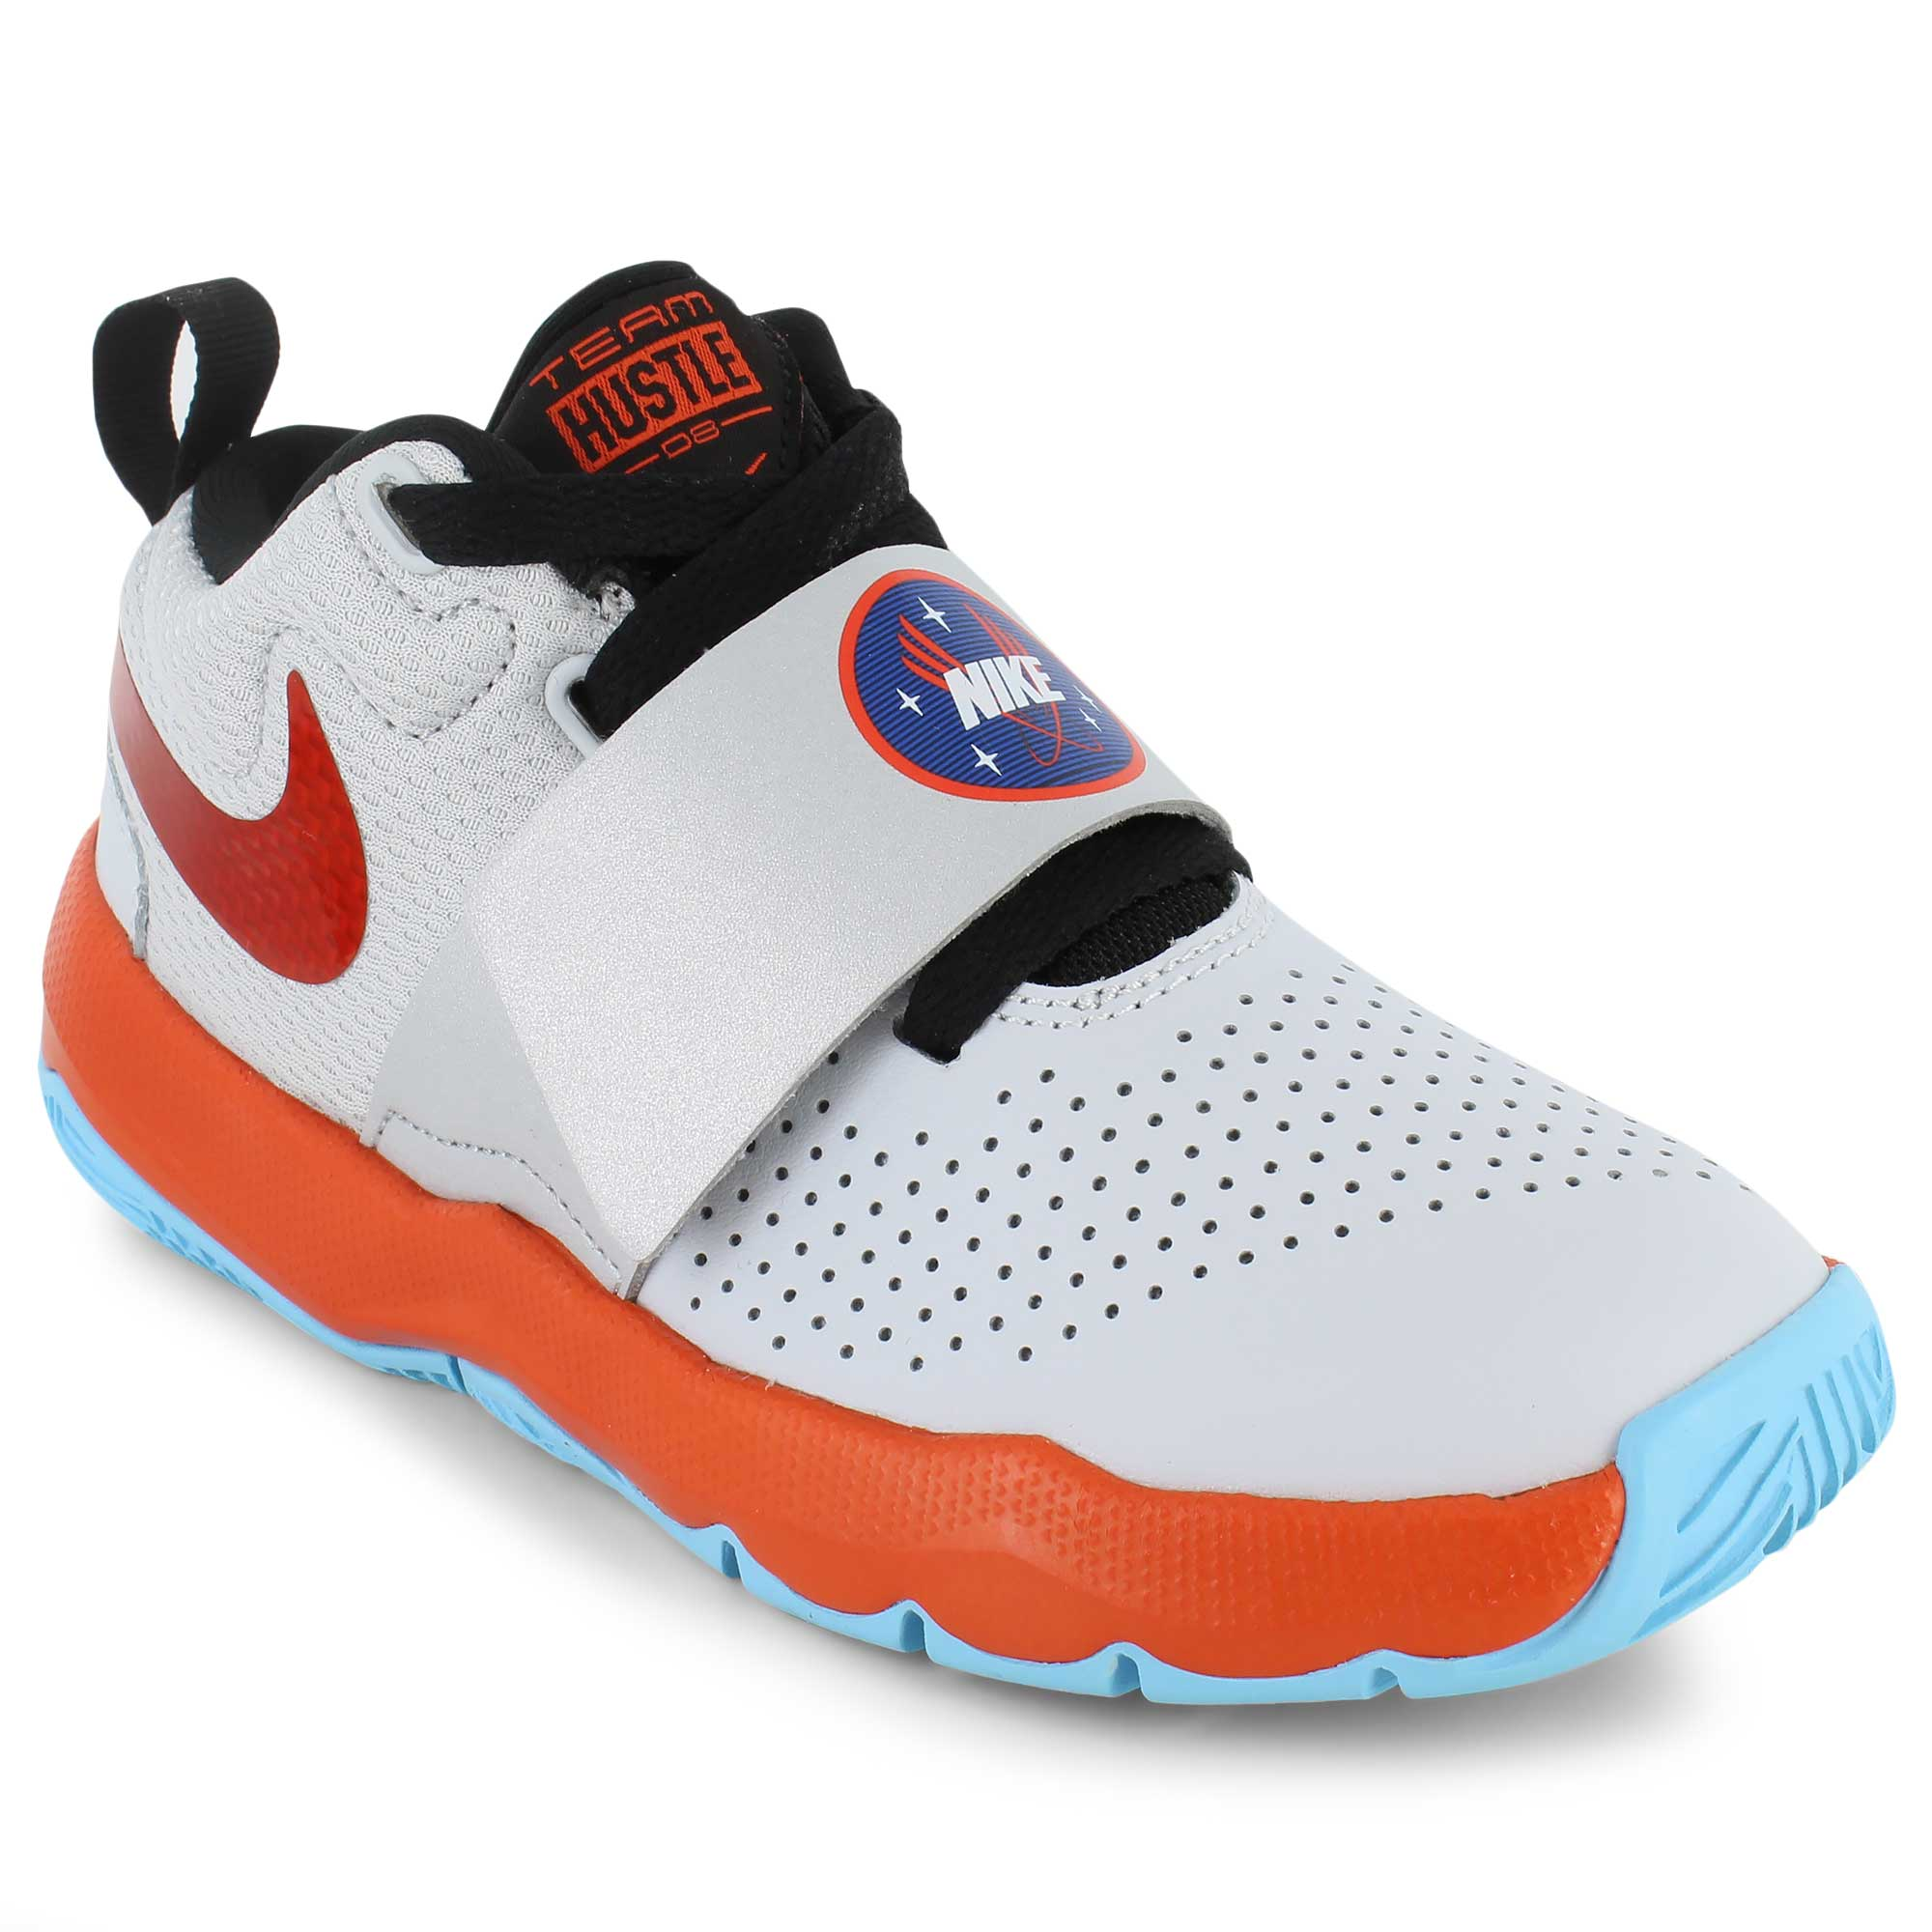 uk availability d22fd 9a6aa Nike Team Hustle D 8 SD